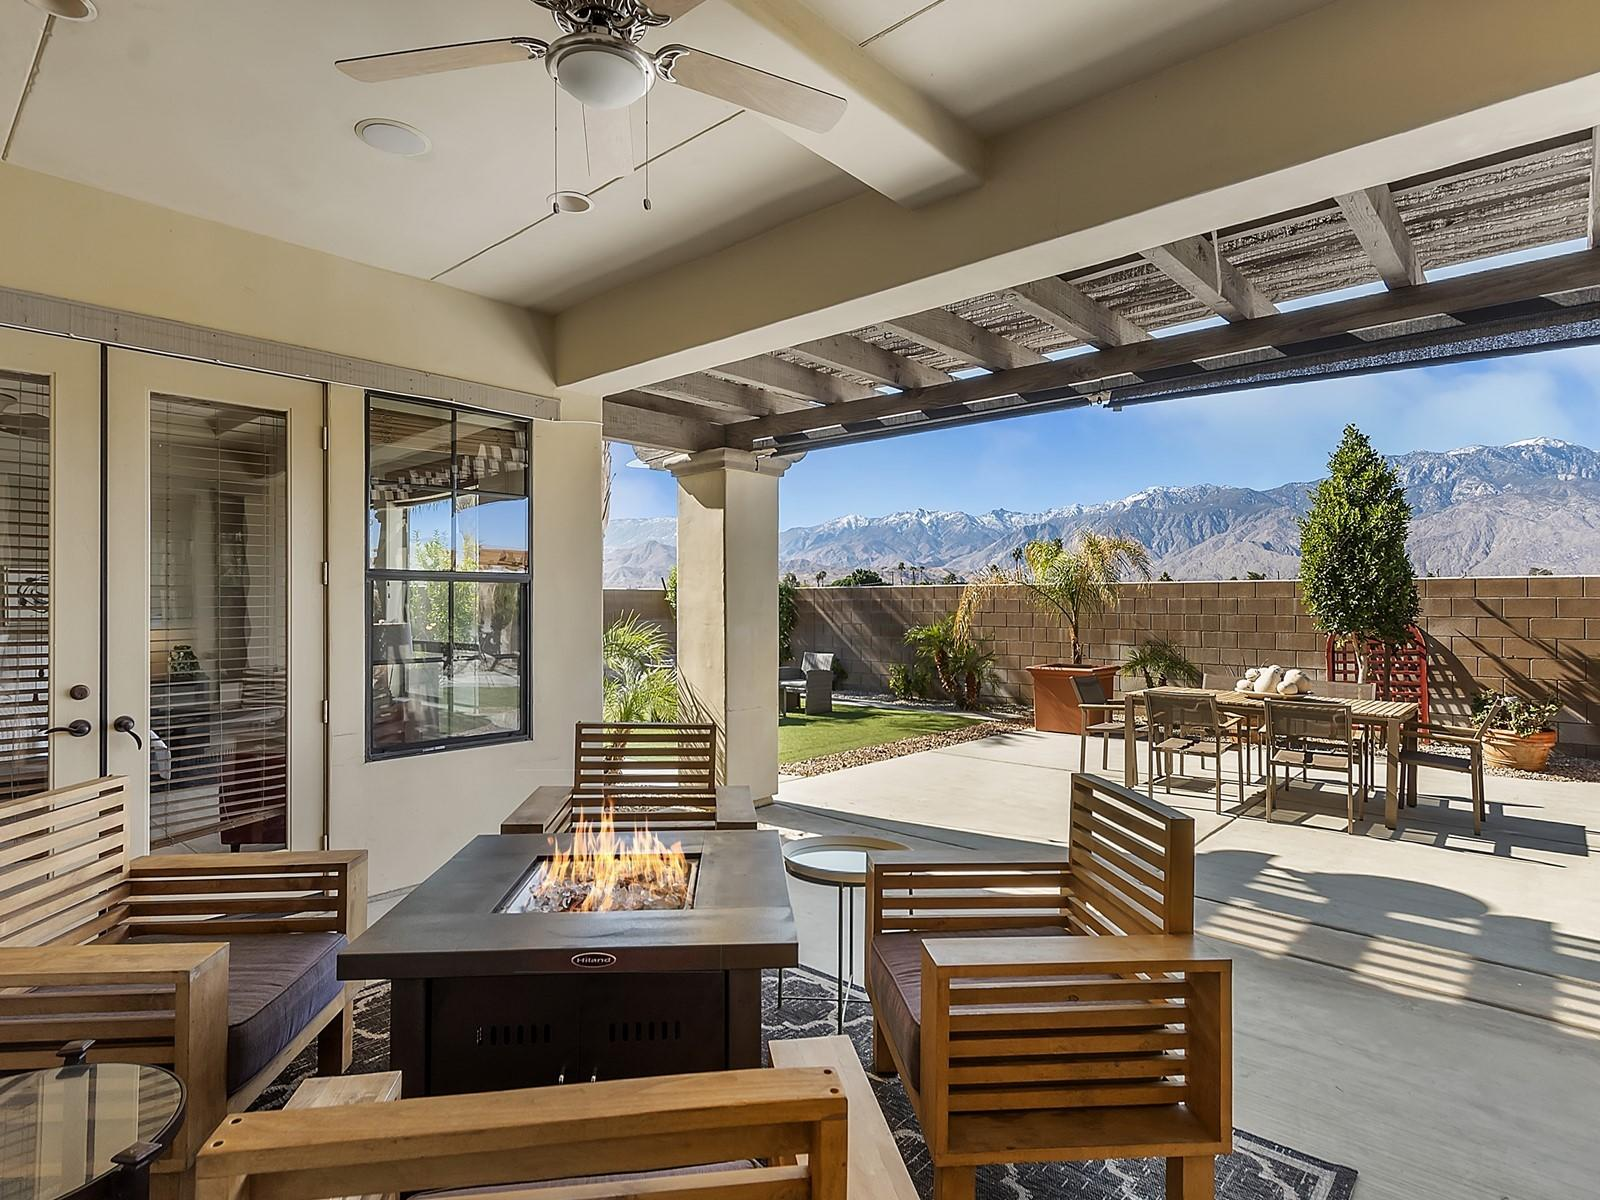 Largest model at Campanile with upgrades galore from custom tiled floors to lighting to sound system. Open airy floor plan, awesome mountain views. Master suite and attached casita on first level. 2 guest bedrooms with ''jack'n jill'' bath and den/media loft area. Formal dining, fabulous chef's kitchen with center island and breakfast nook. 2 car attached garage on side and one car garage adjacent to casita.  The backyard is beautifully appointed with gazebo, covered patio and artificial turf.  Community features include resort sized pool, spa, gym, club house and LOW HOAs. Great central location to shopping, restaurants, I-10 access , golf and casinos.